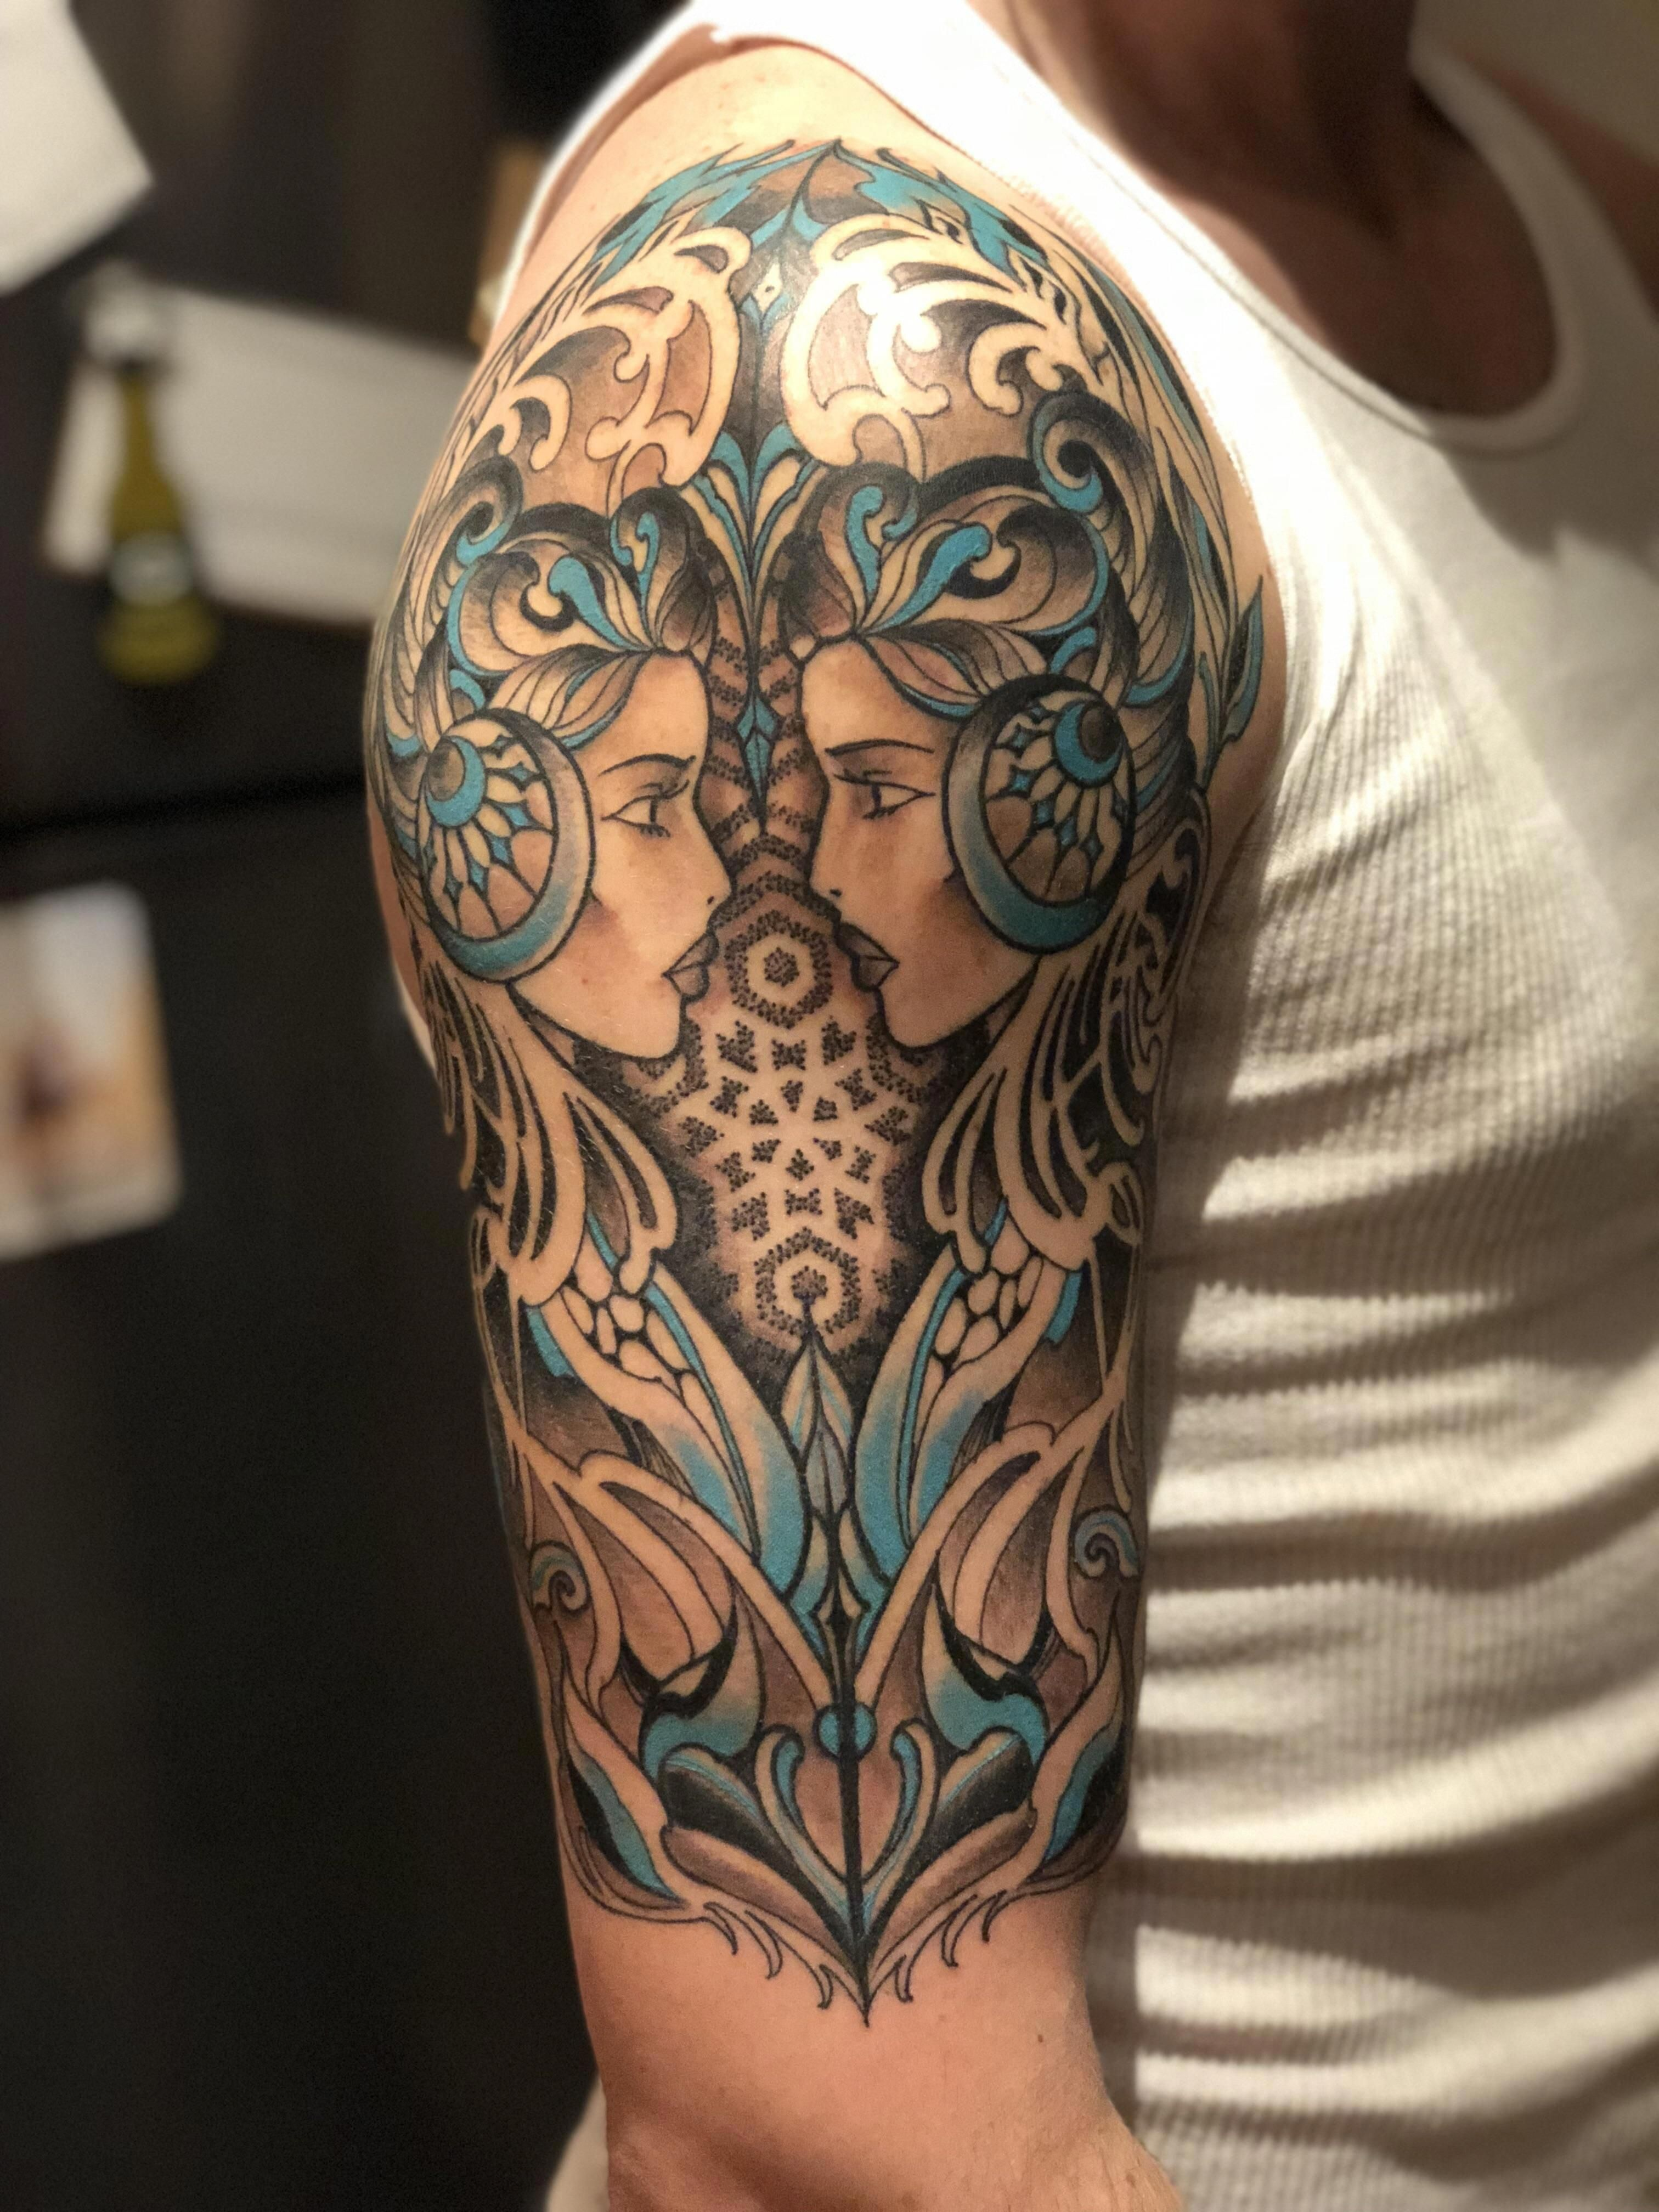 Best Gemini Tattoos Gemini Tattoo Designs Gemini Tattoo Gemini Zodiac Tattoos